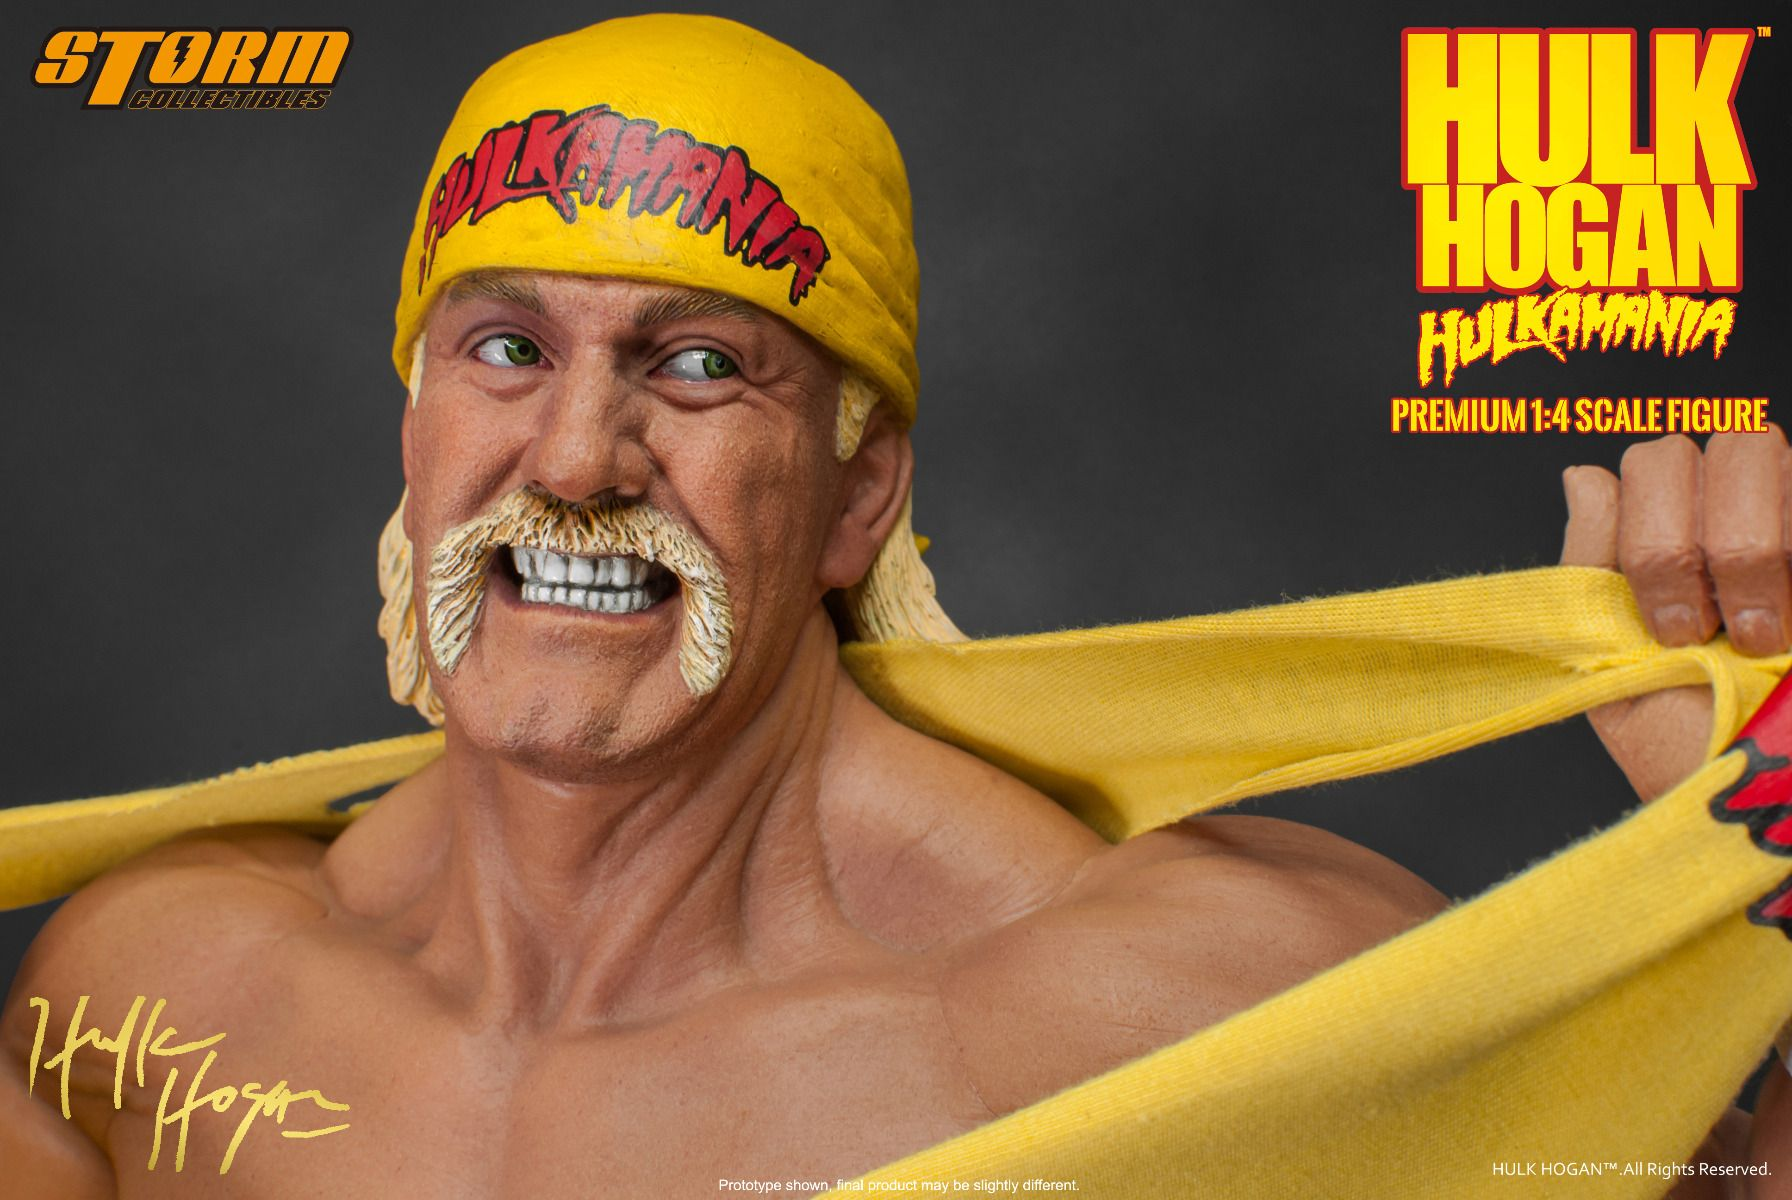 Young hulk hogan pictures-7758